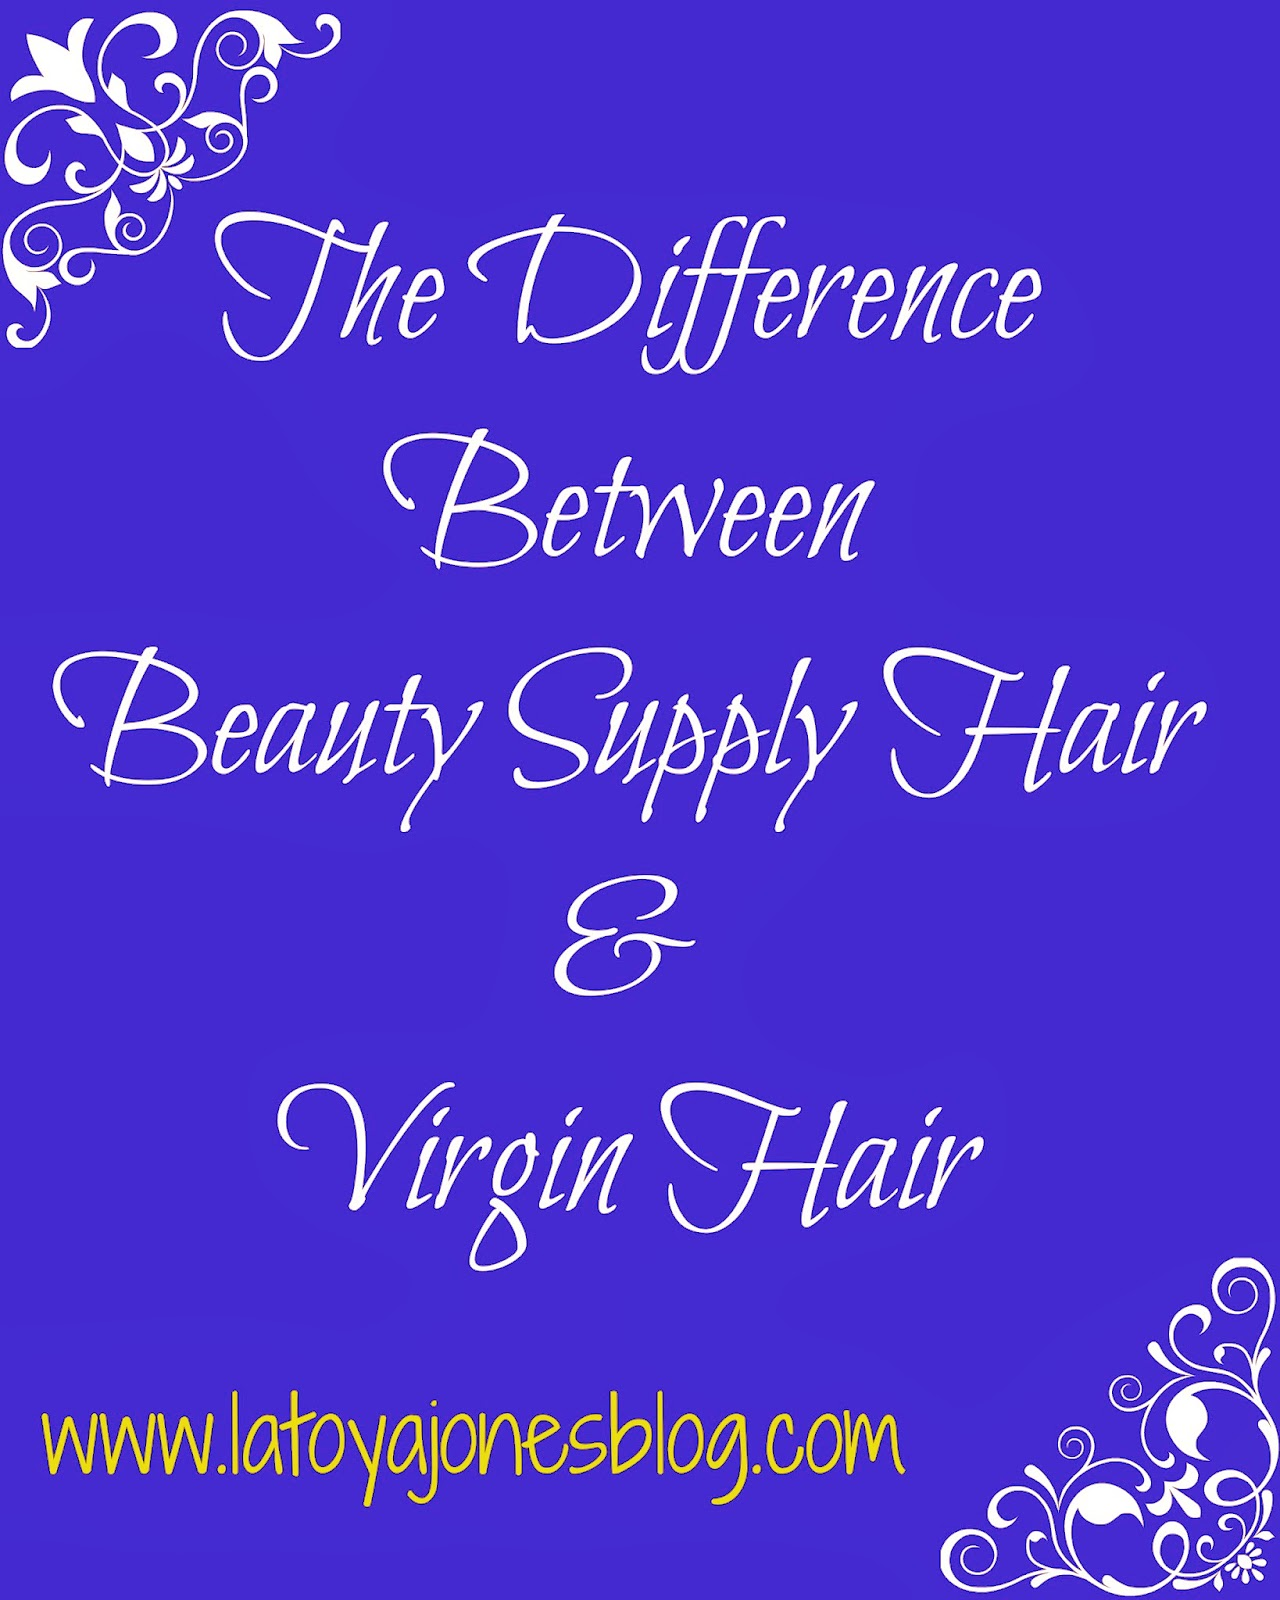 comparison of american beauty and virgin Virgin america also has codeshare agreements with hawaiian airlines compare, and save on your reservations 1-877-fly-virgin virgin america links.